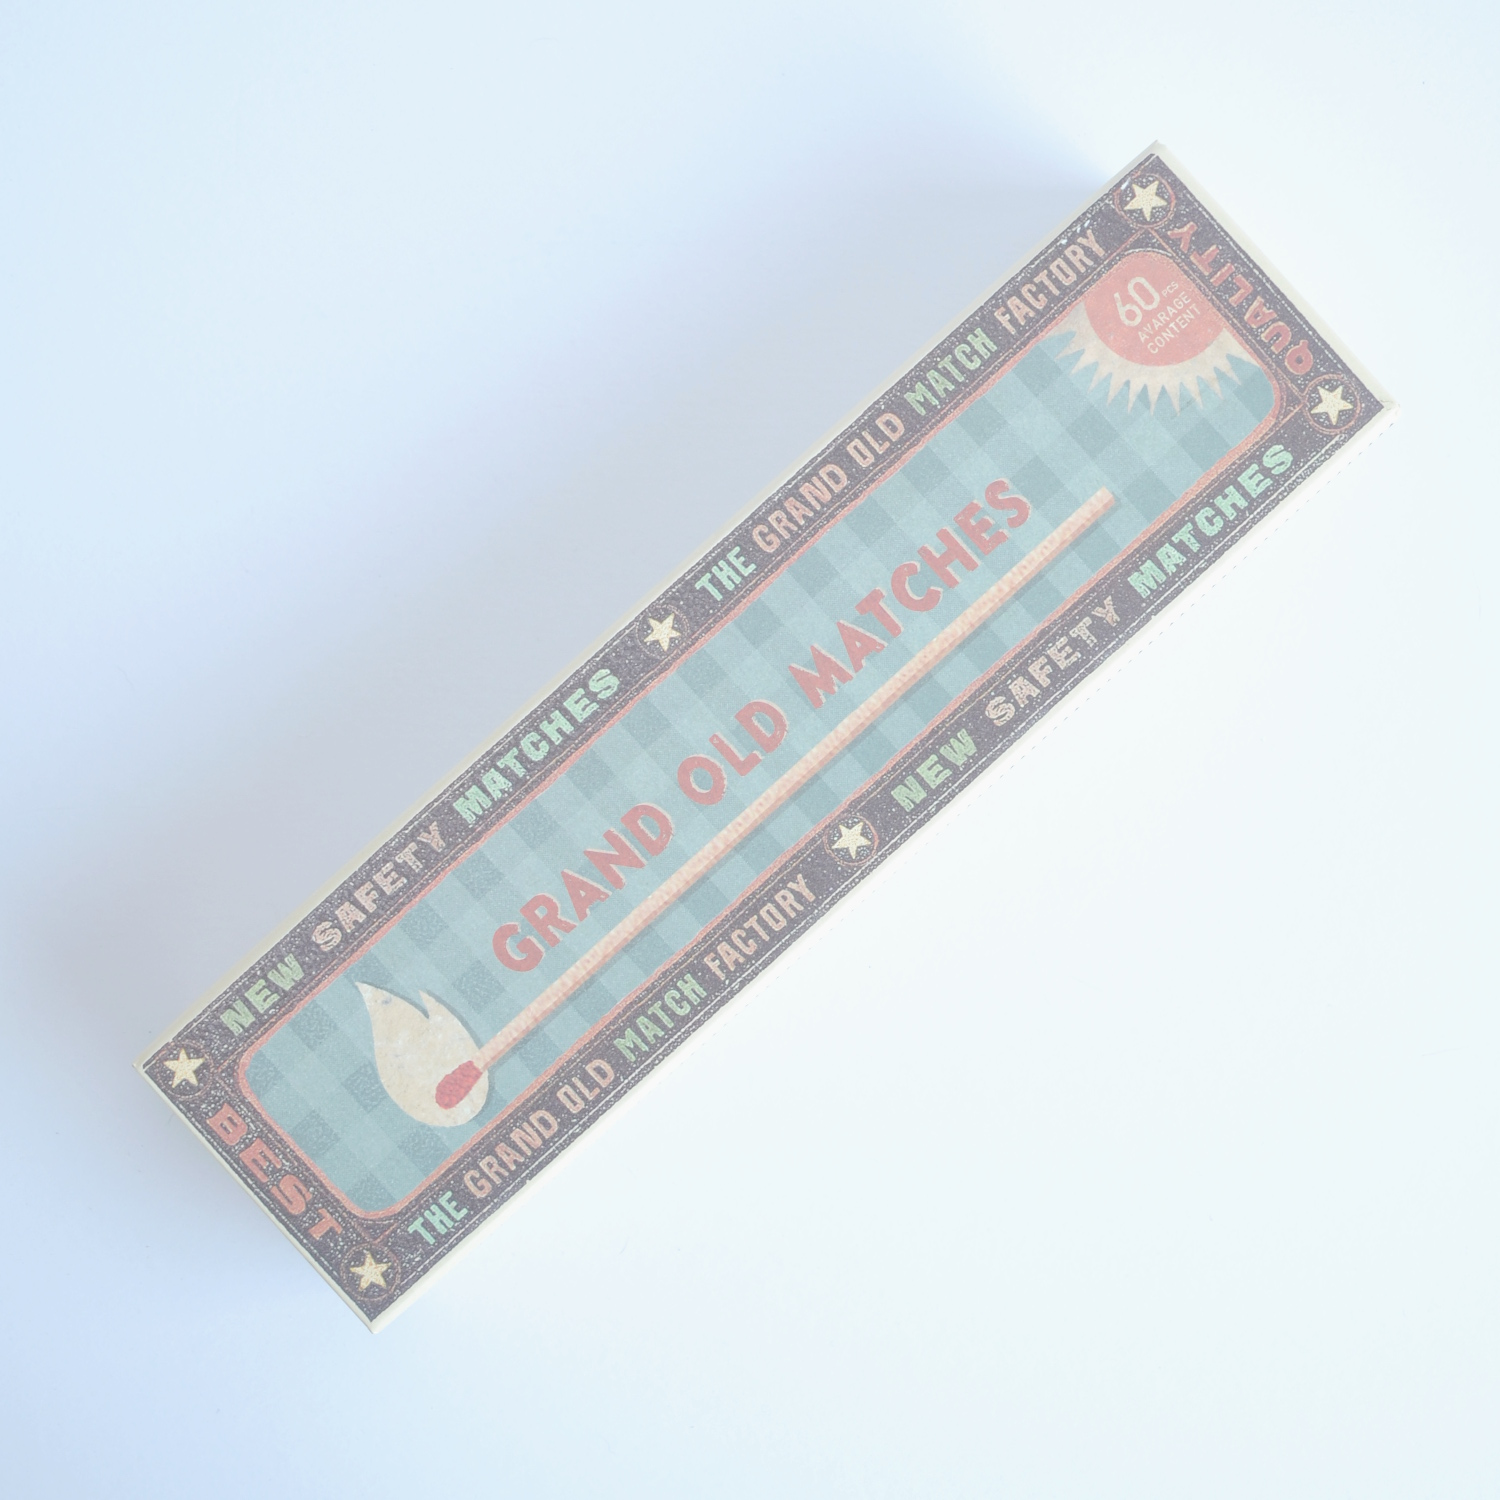 Maileg matchbox case